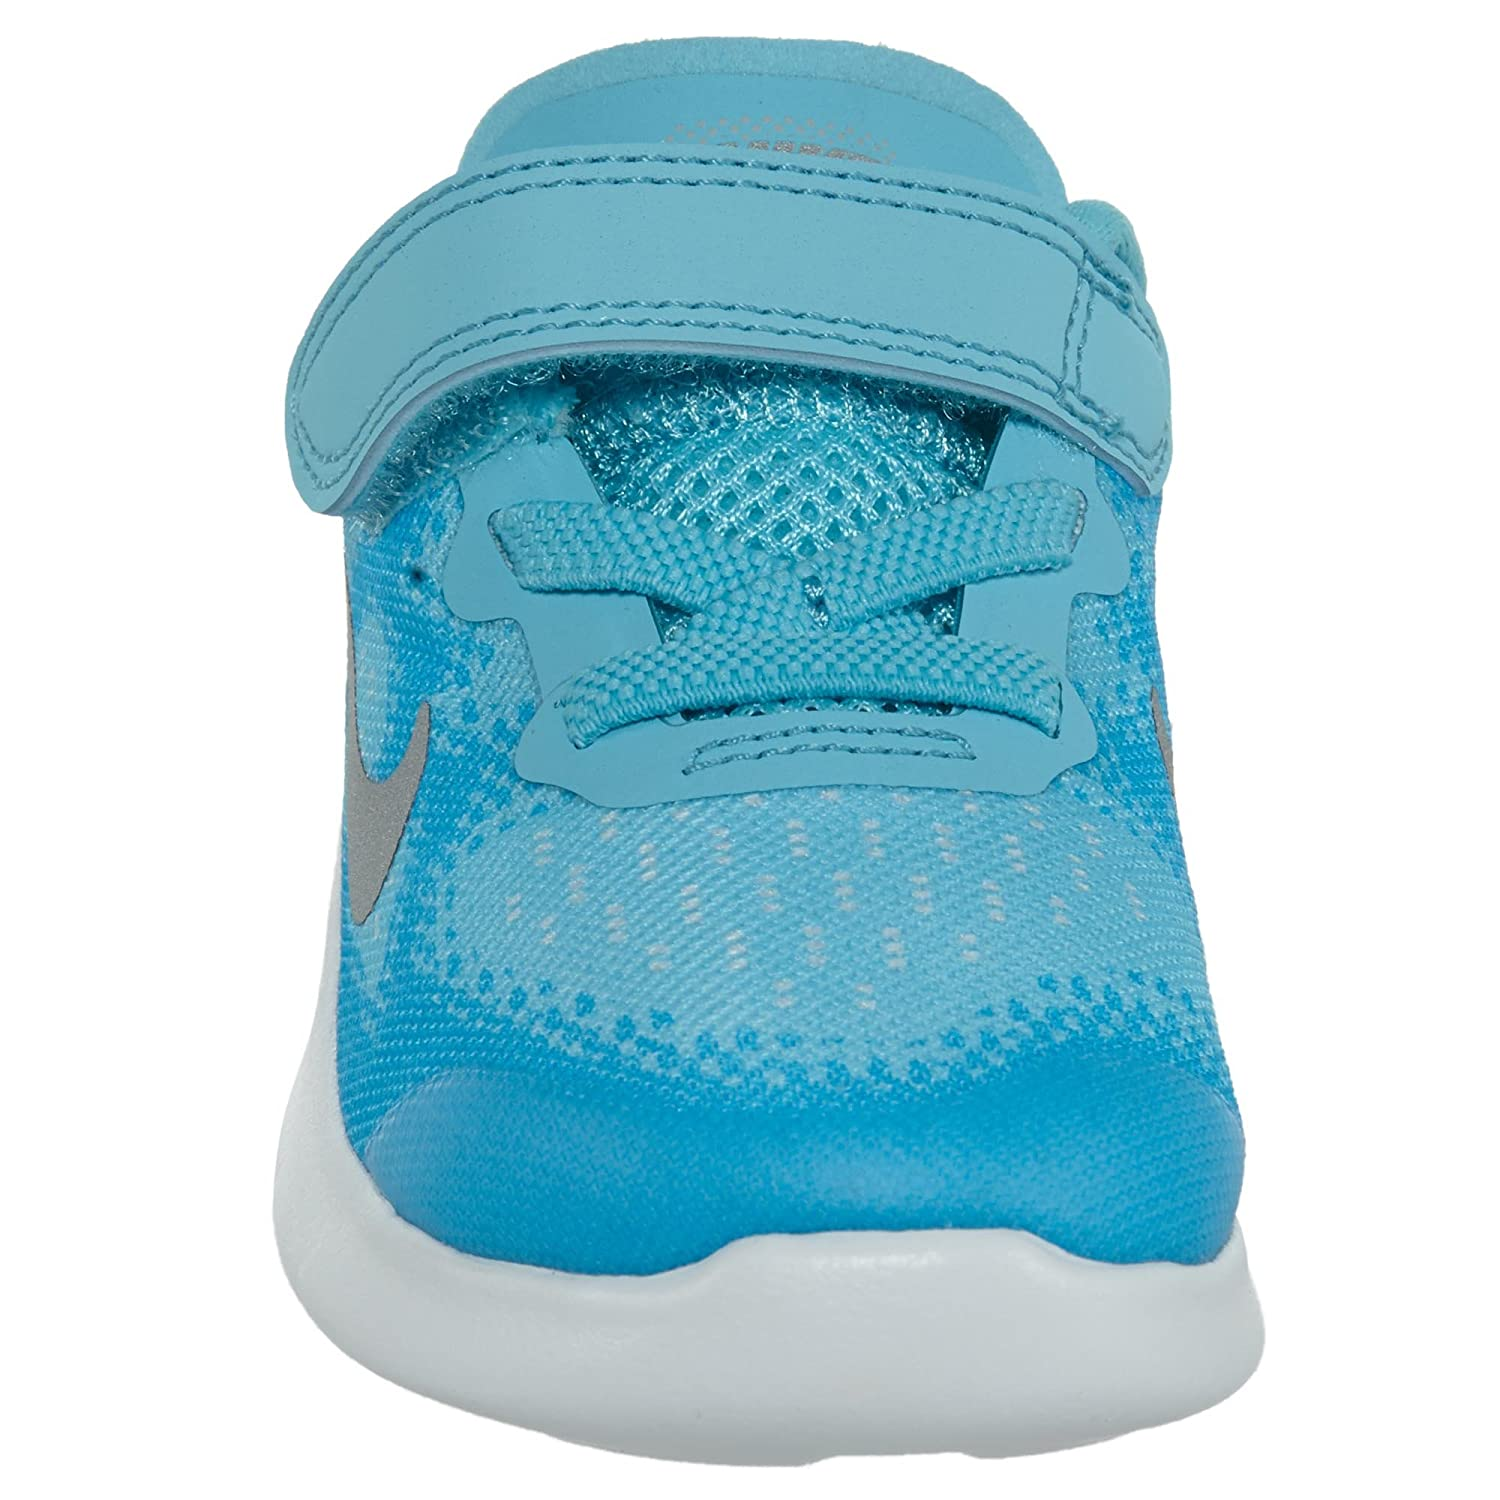 NIKE Free Rn 2017 Toddlers Style 904261-401 Size 5